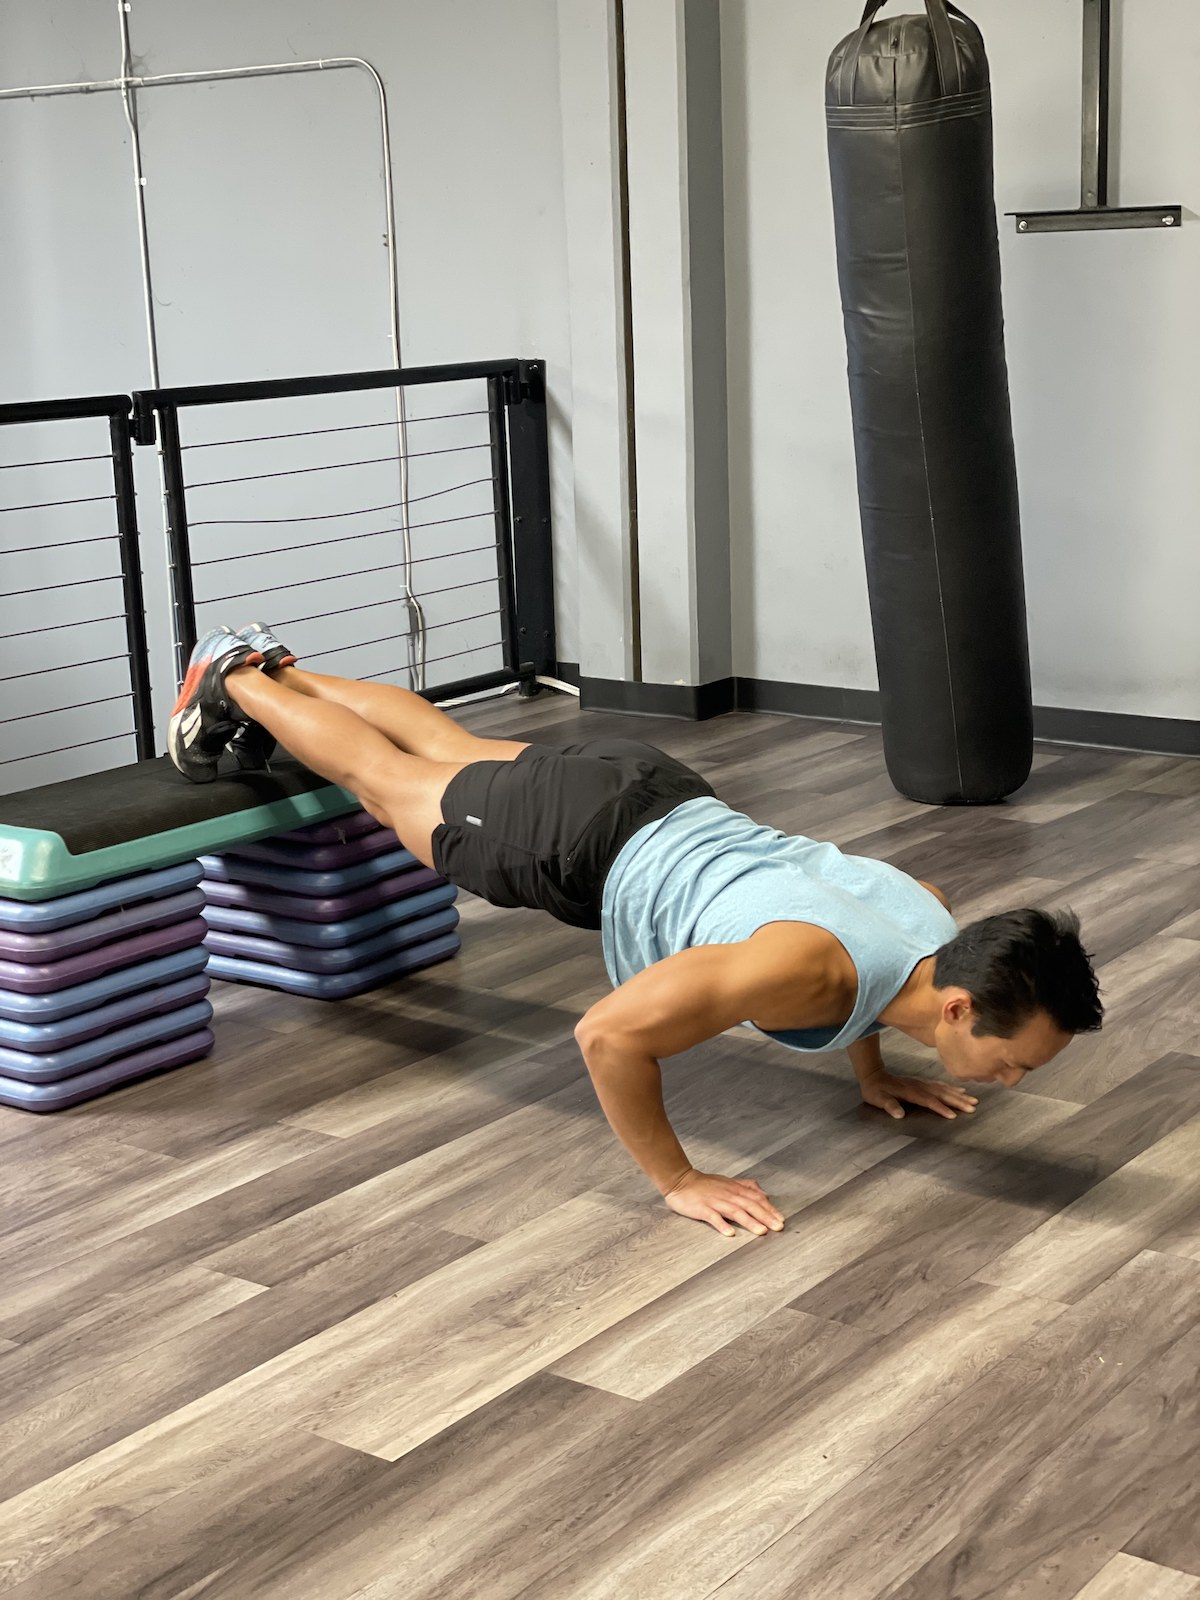 proper pushup form for a harder elevated pushup